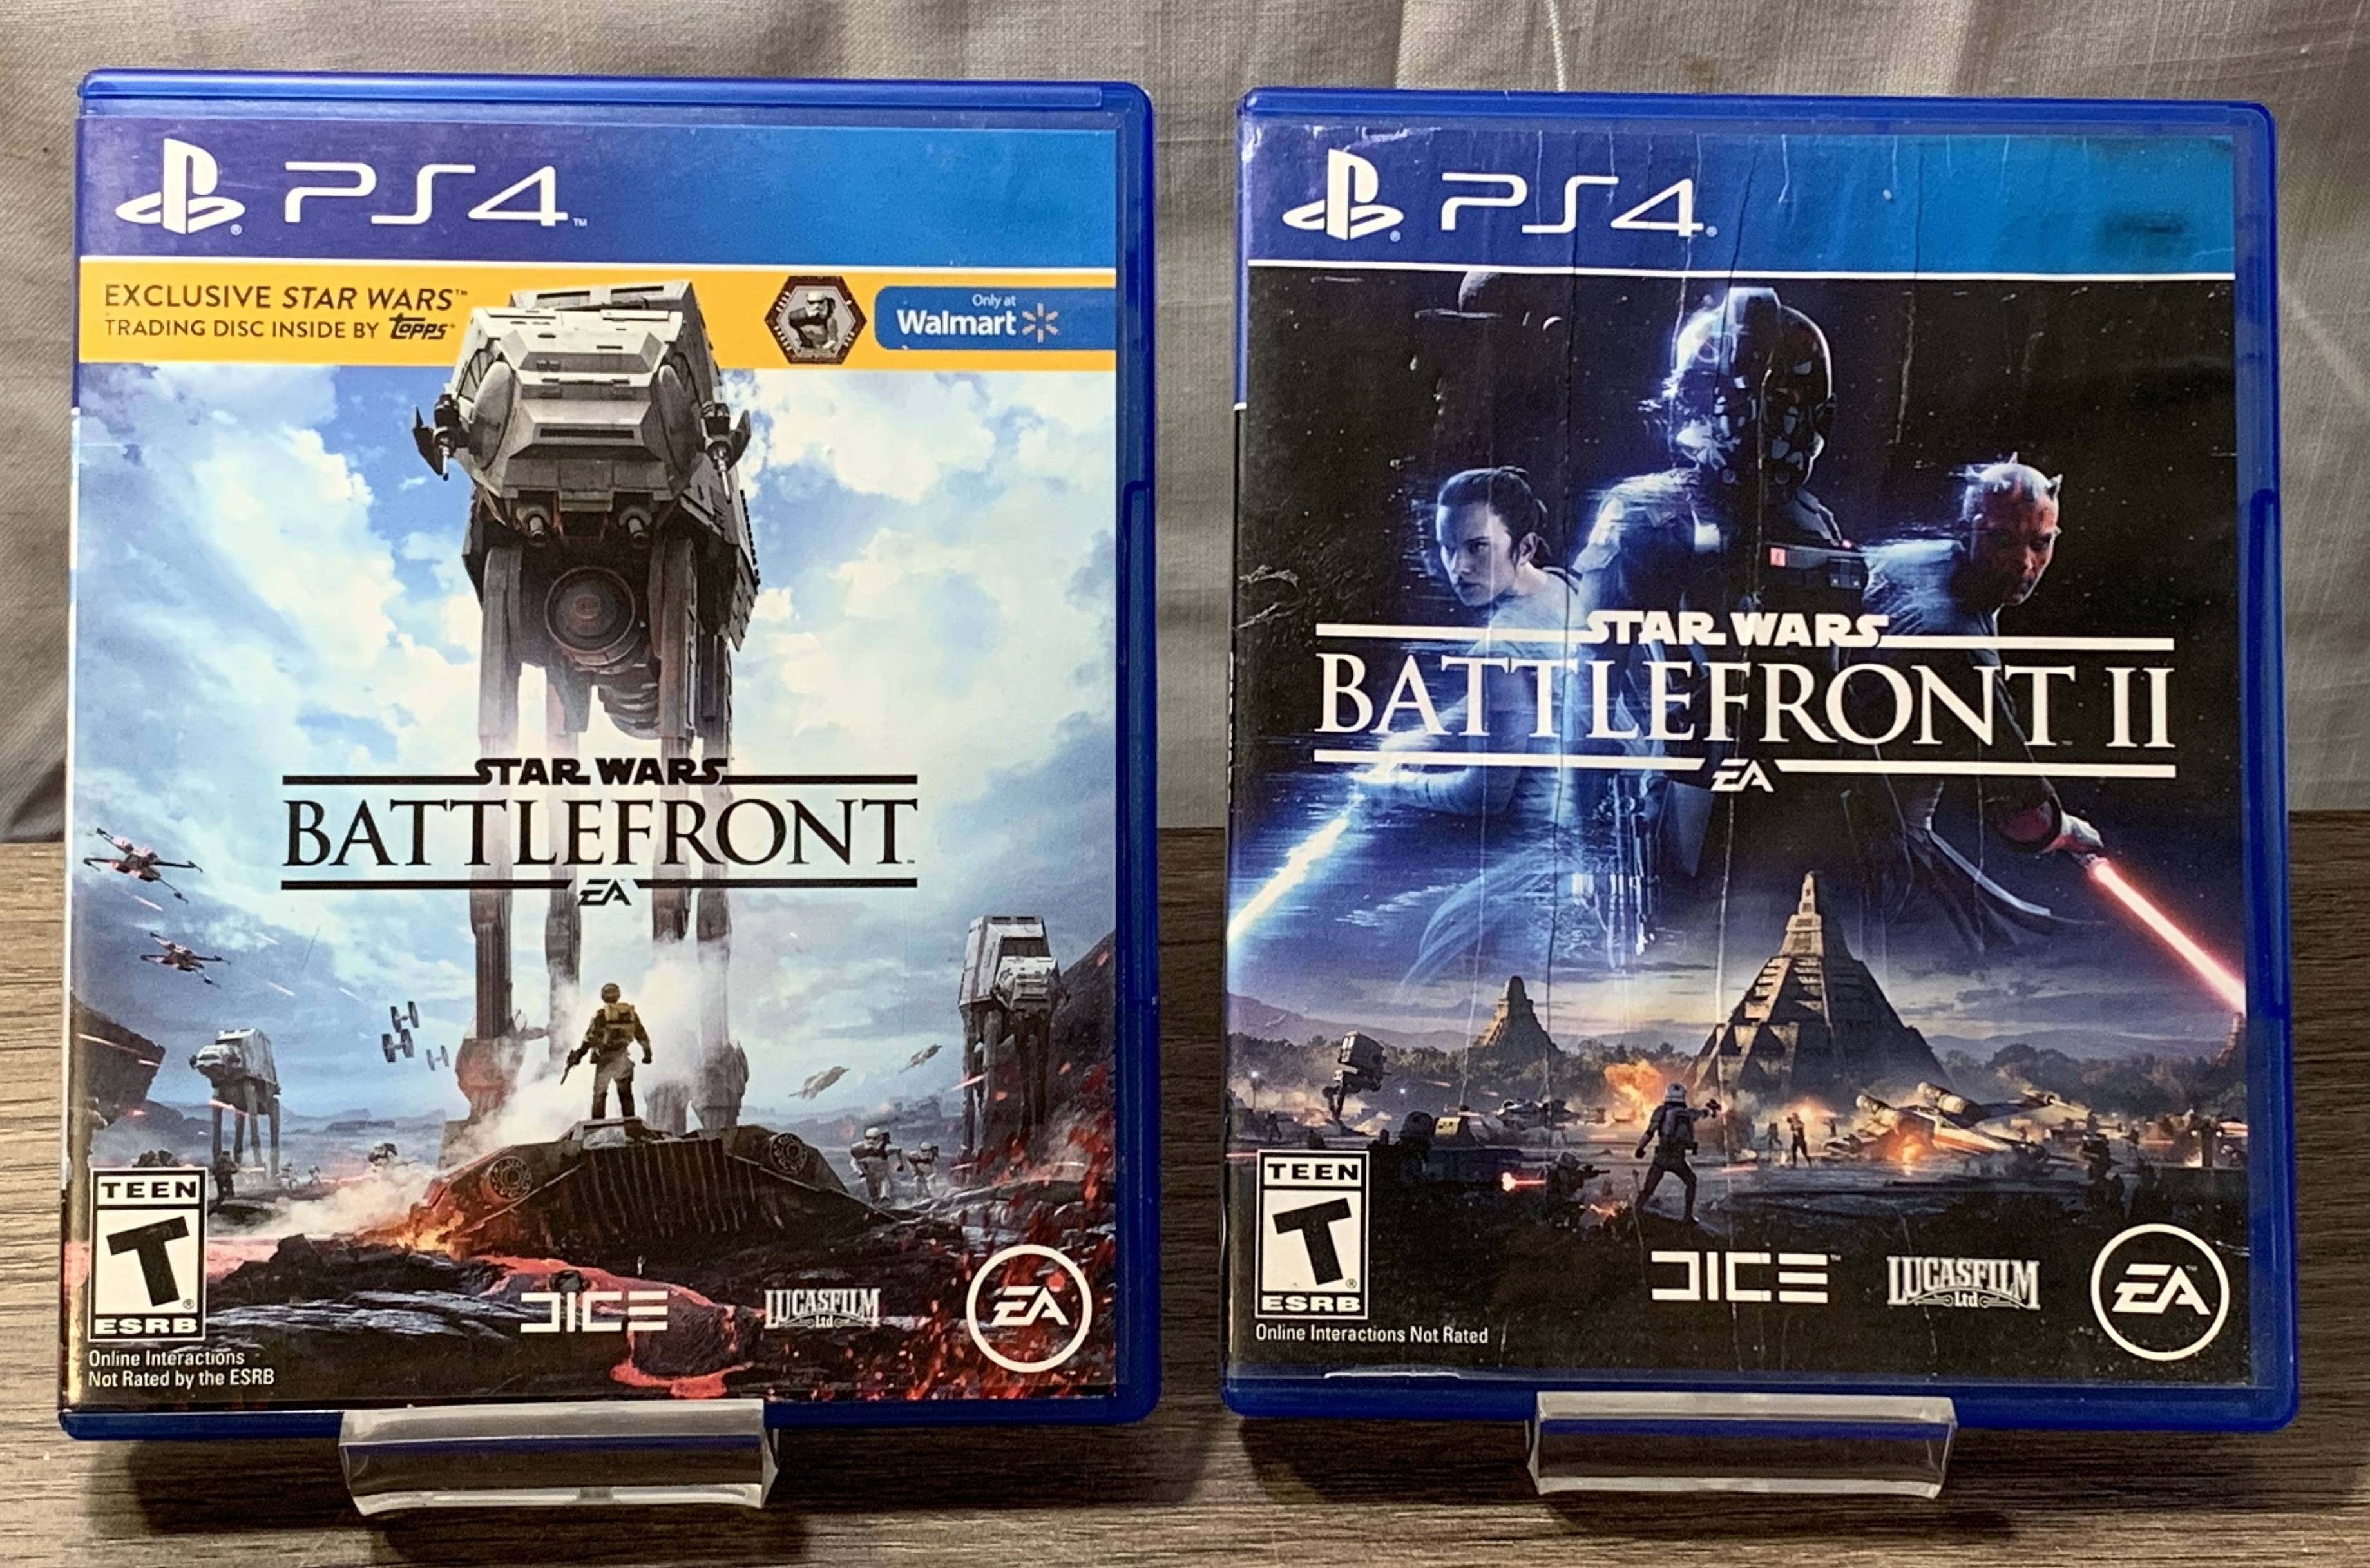 Star Wars Battlefront I & Star Wars Battlefront II Combo Pack